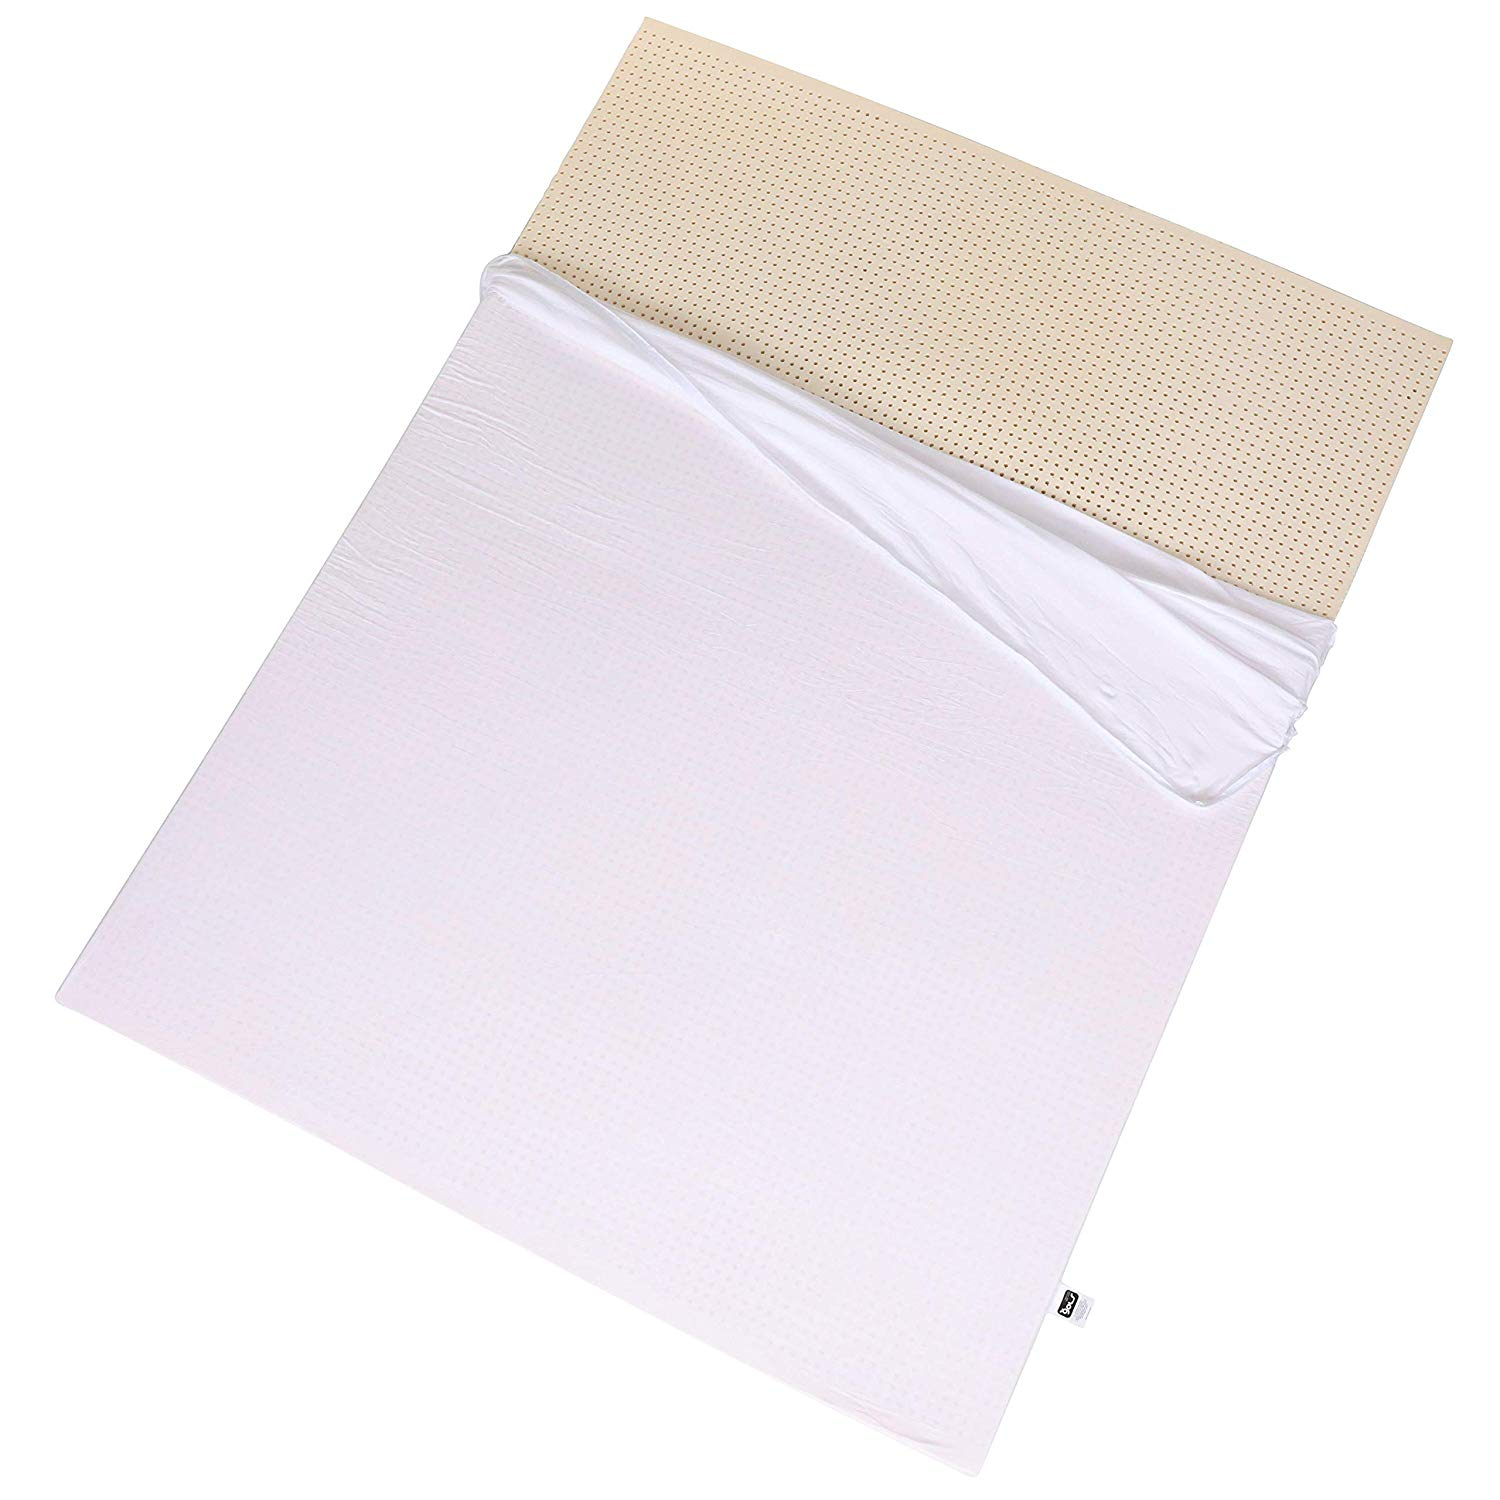 Take Ten Latex Mattress Topper Review by www.snoremagazine.com